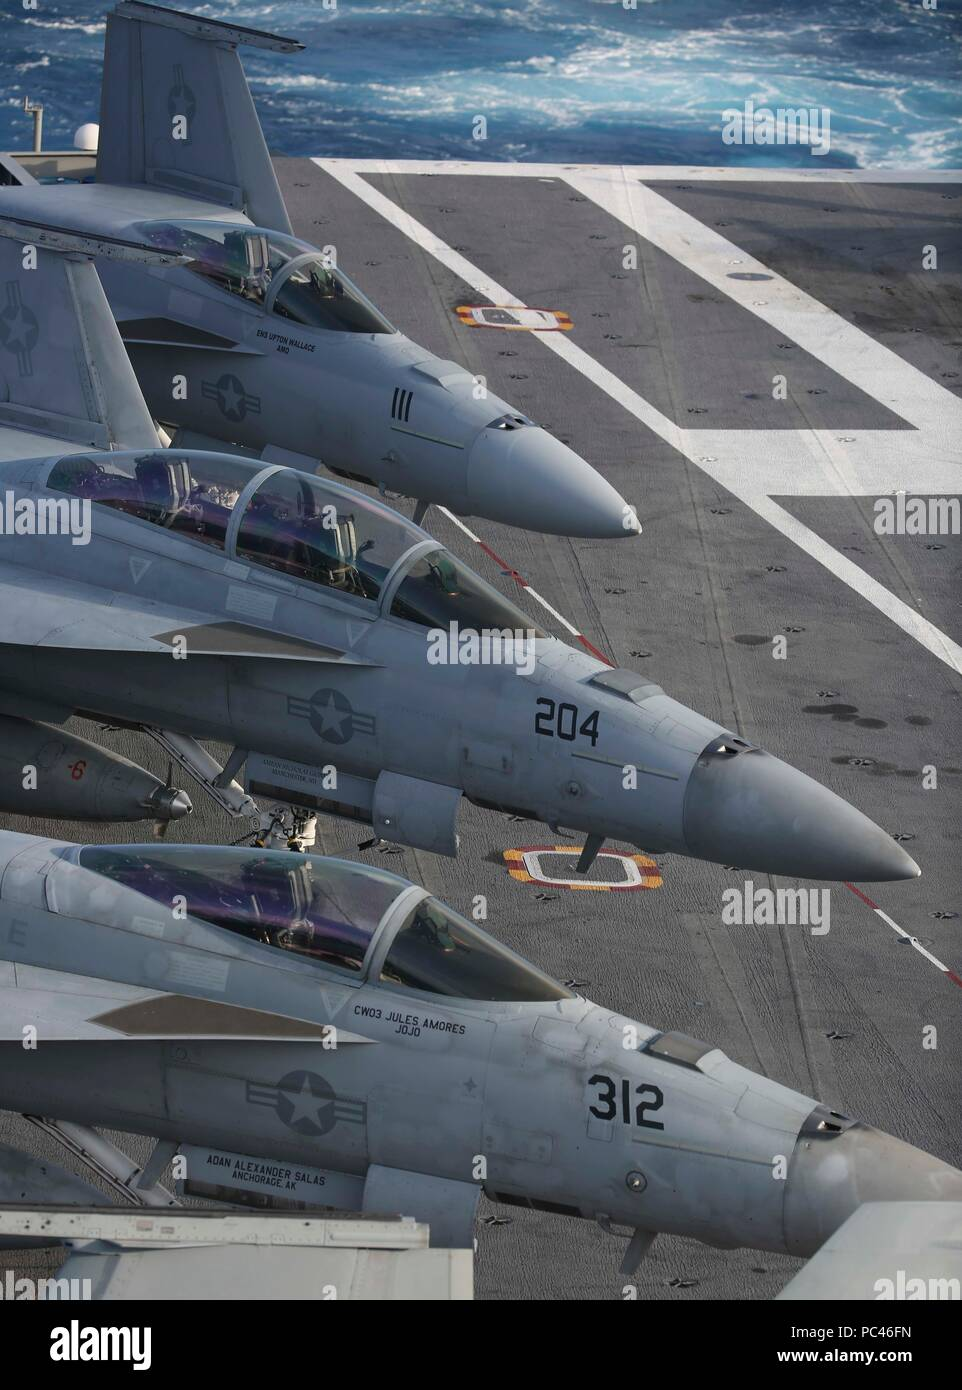 180727-N-NN369-1329 ATLANTIC OCEAN (July 27, 2018) F/A-18E Super Hornets attached to Carrier Air Wing (CVW) 7 are secured on the flight deck of the Nimitz-class aircraft carrier USS Abraham Lincoln (CVN 72). (U.S. Navy photo by Mass Communication Specialist 2nd Class Jessica Paulauskas/Released) - Stock Image